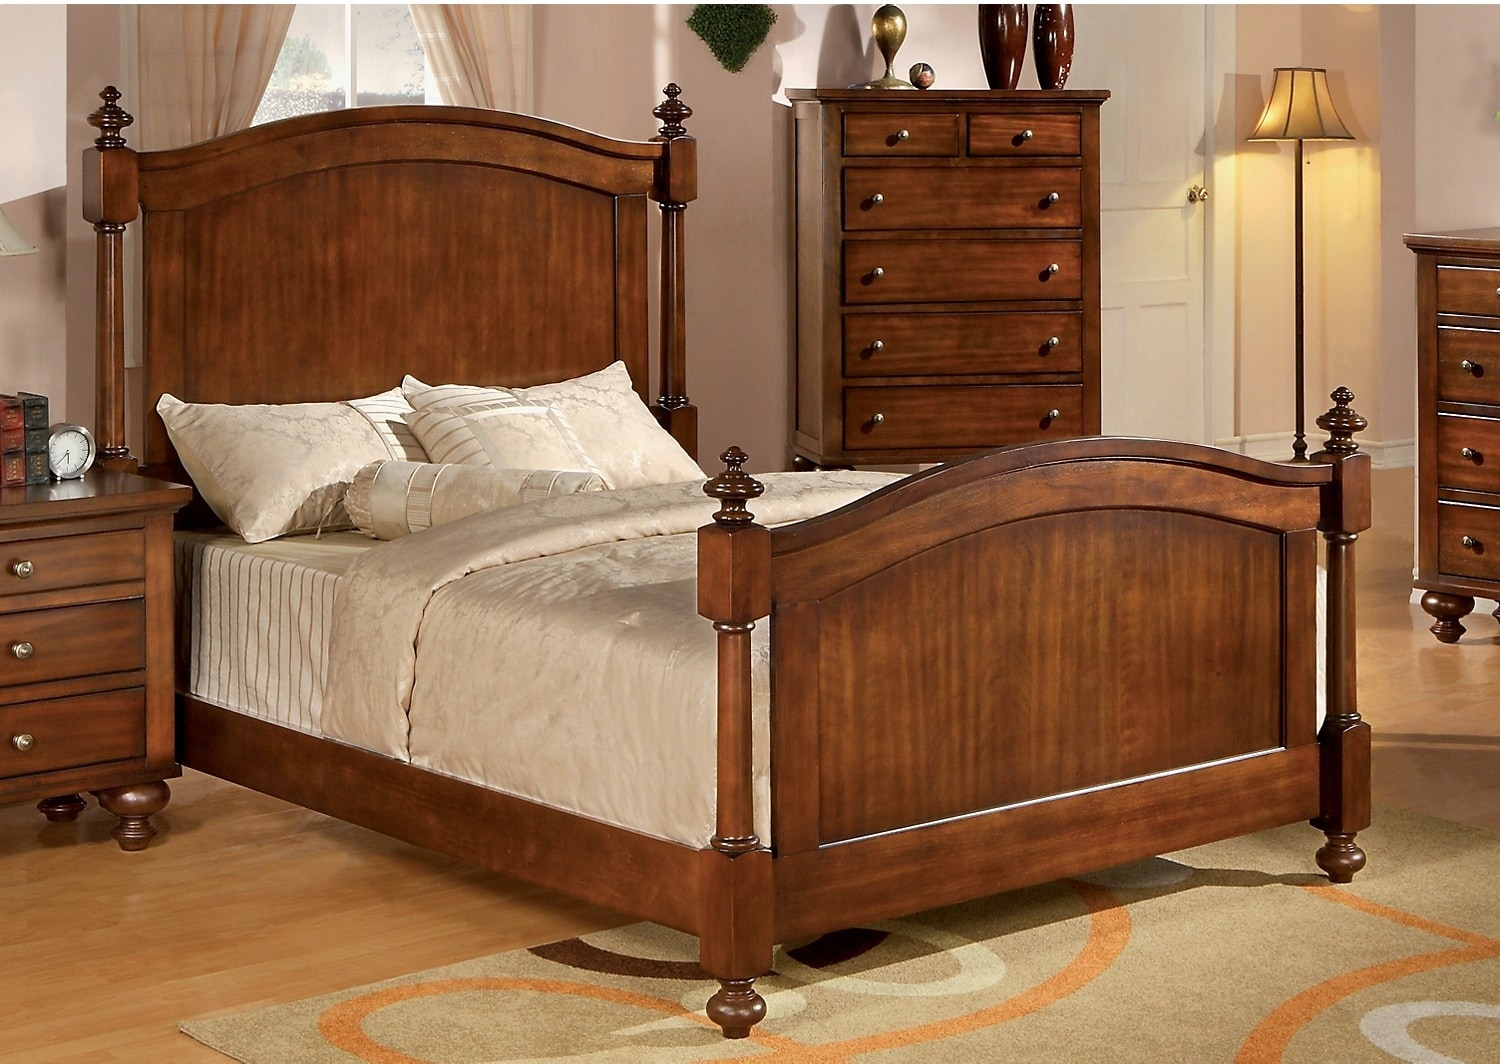 Bedroom Furniture - Kennedy Cherry King Bed